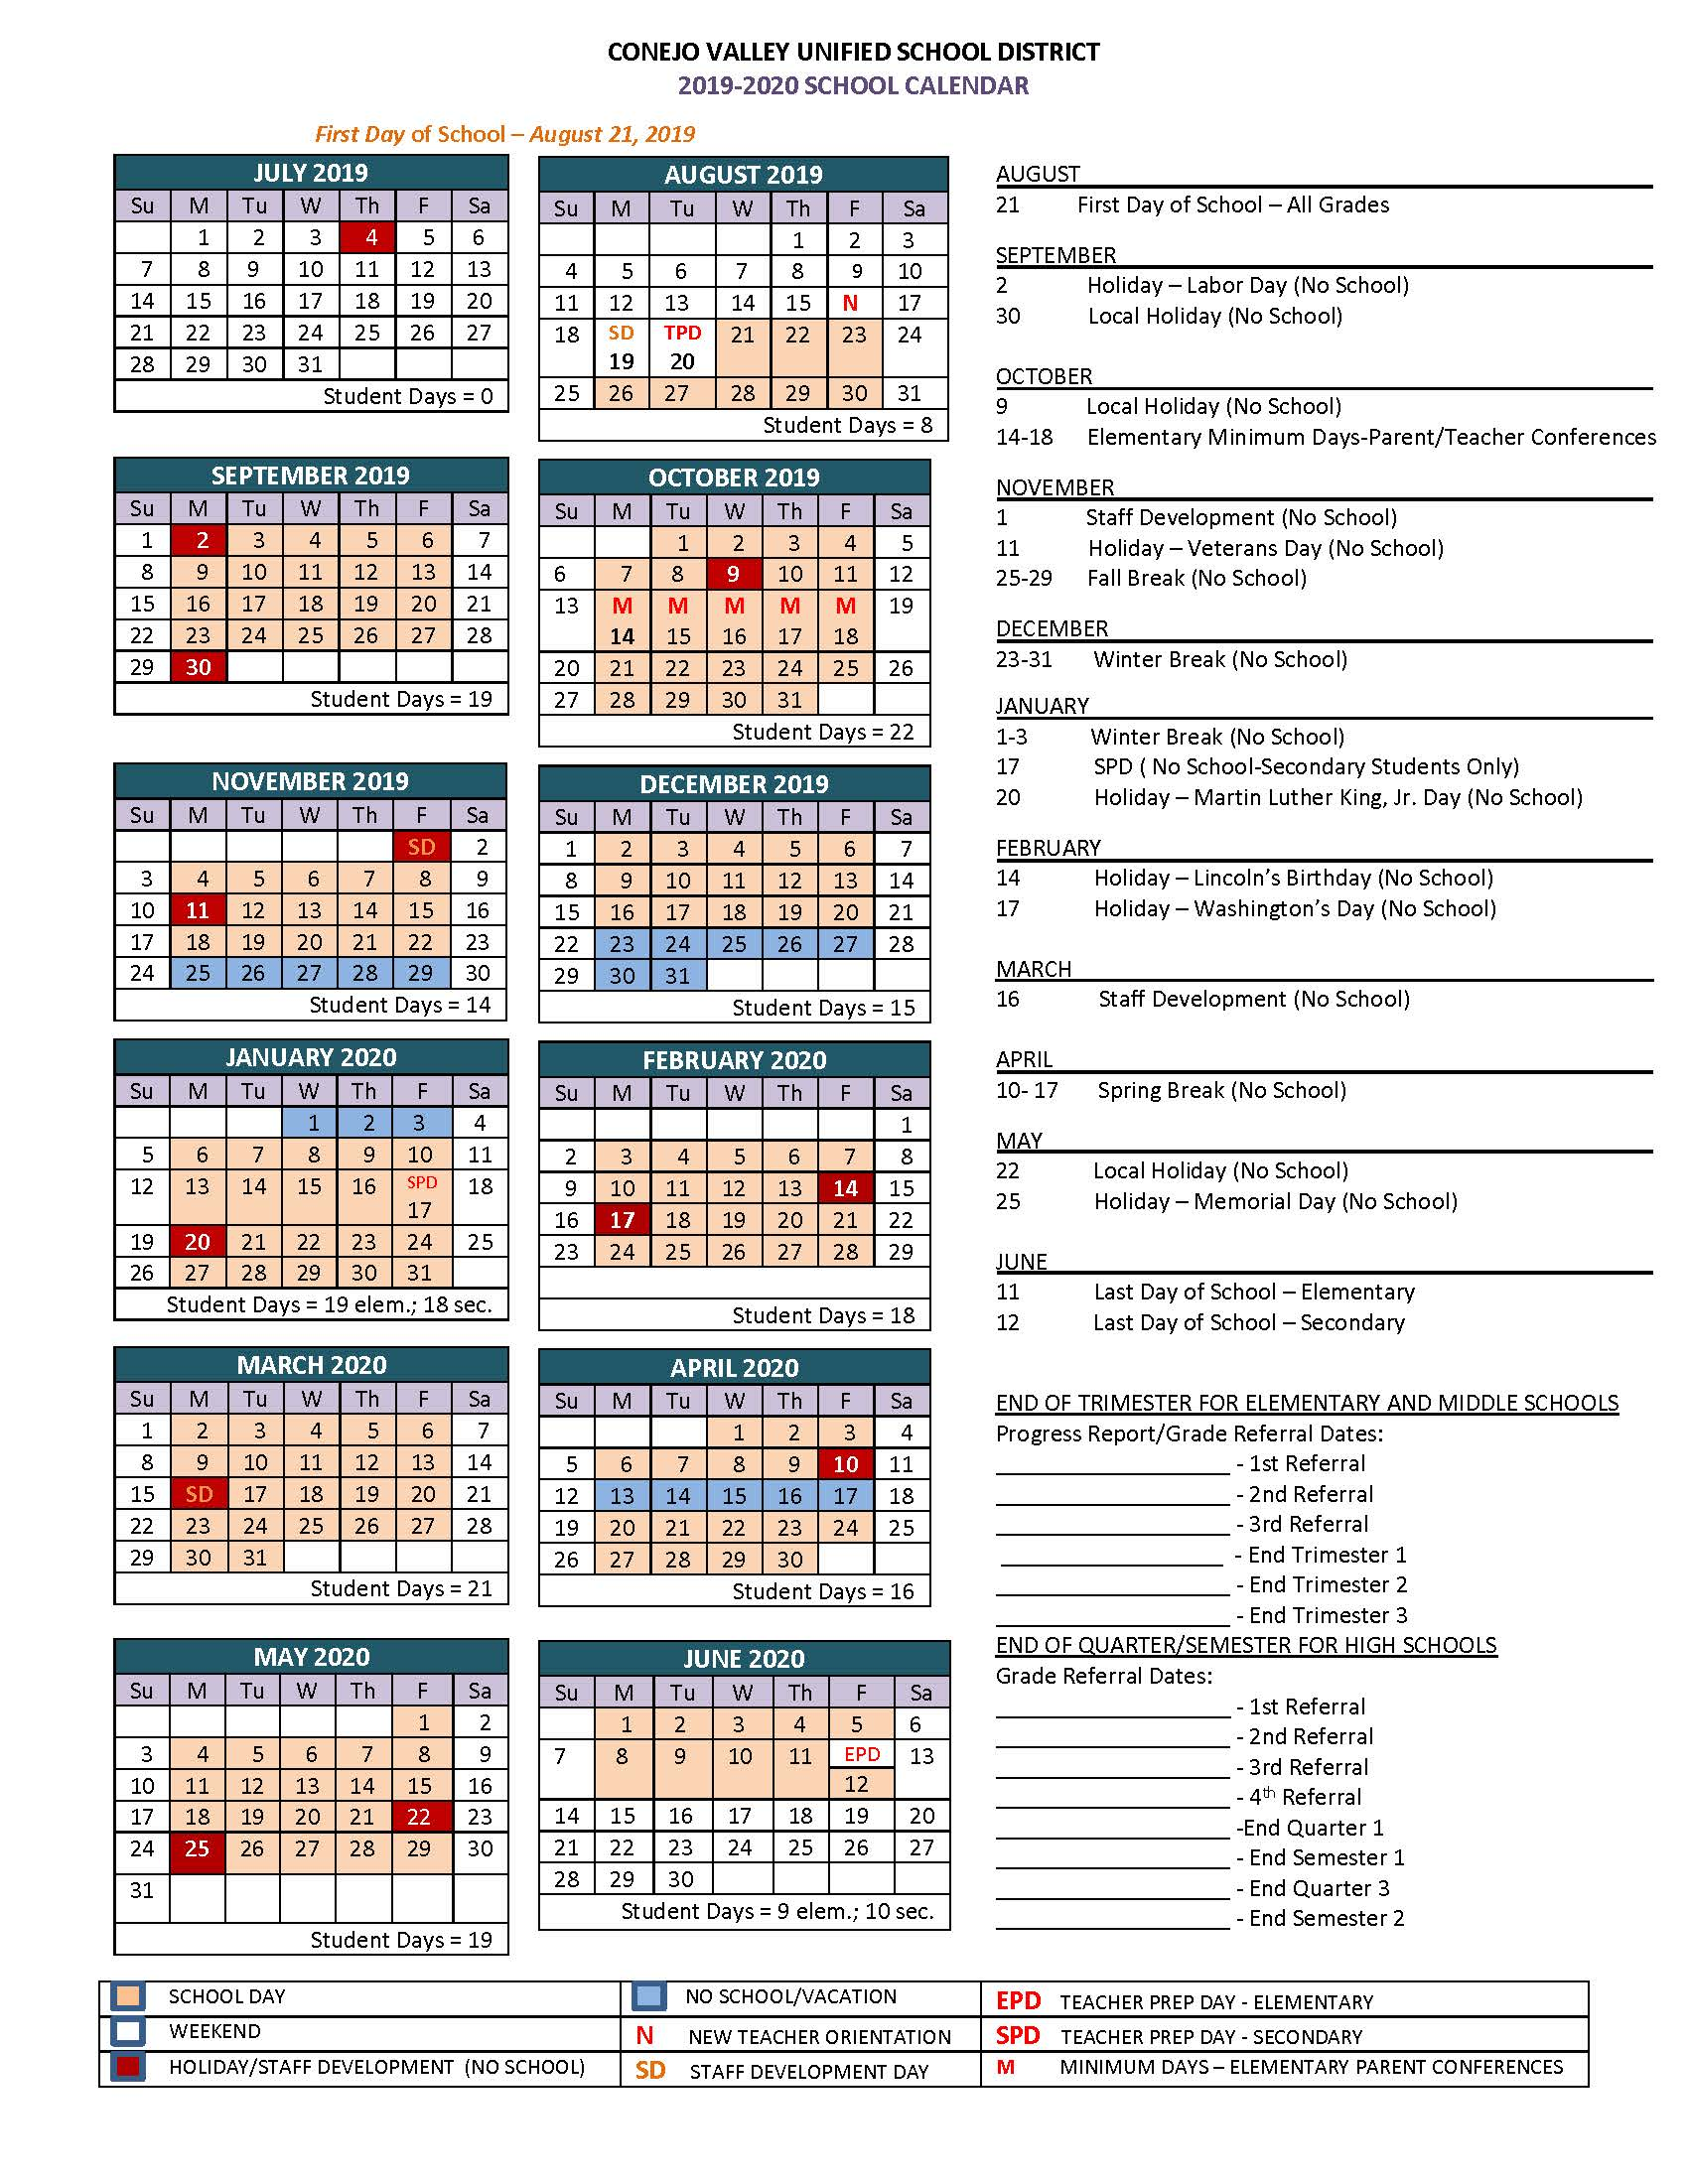 to view the 2019 2020 cvusd school calendar as a pdf click here